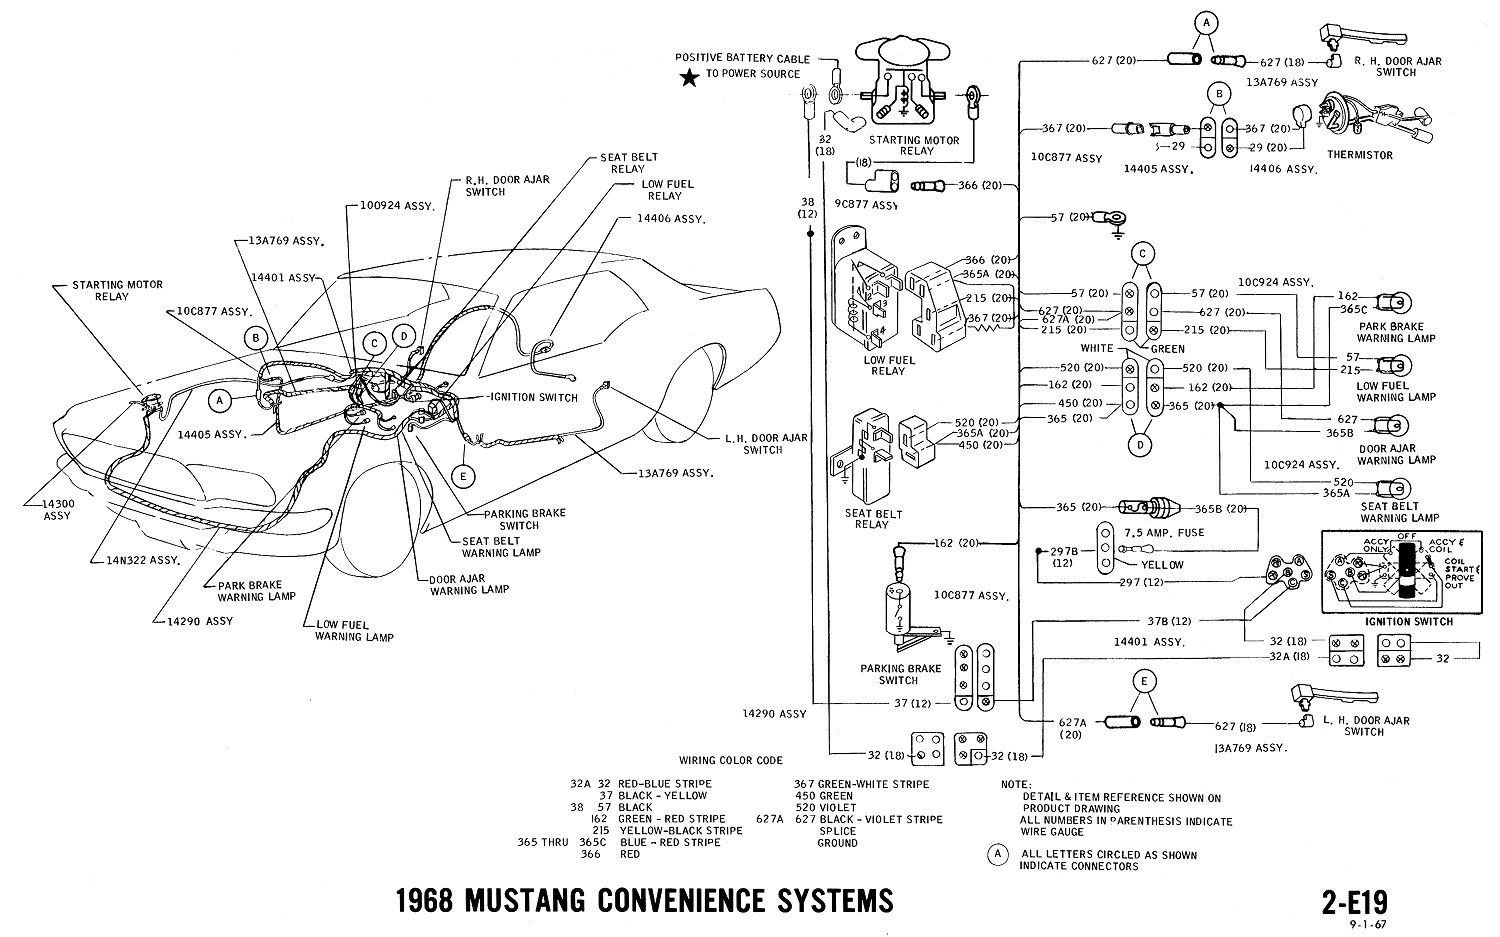 1968 mustang wiring diagrams and vacuum schematics average 1968 mustang alternator wiring